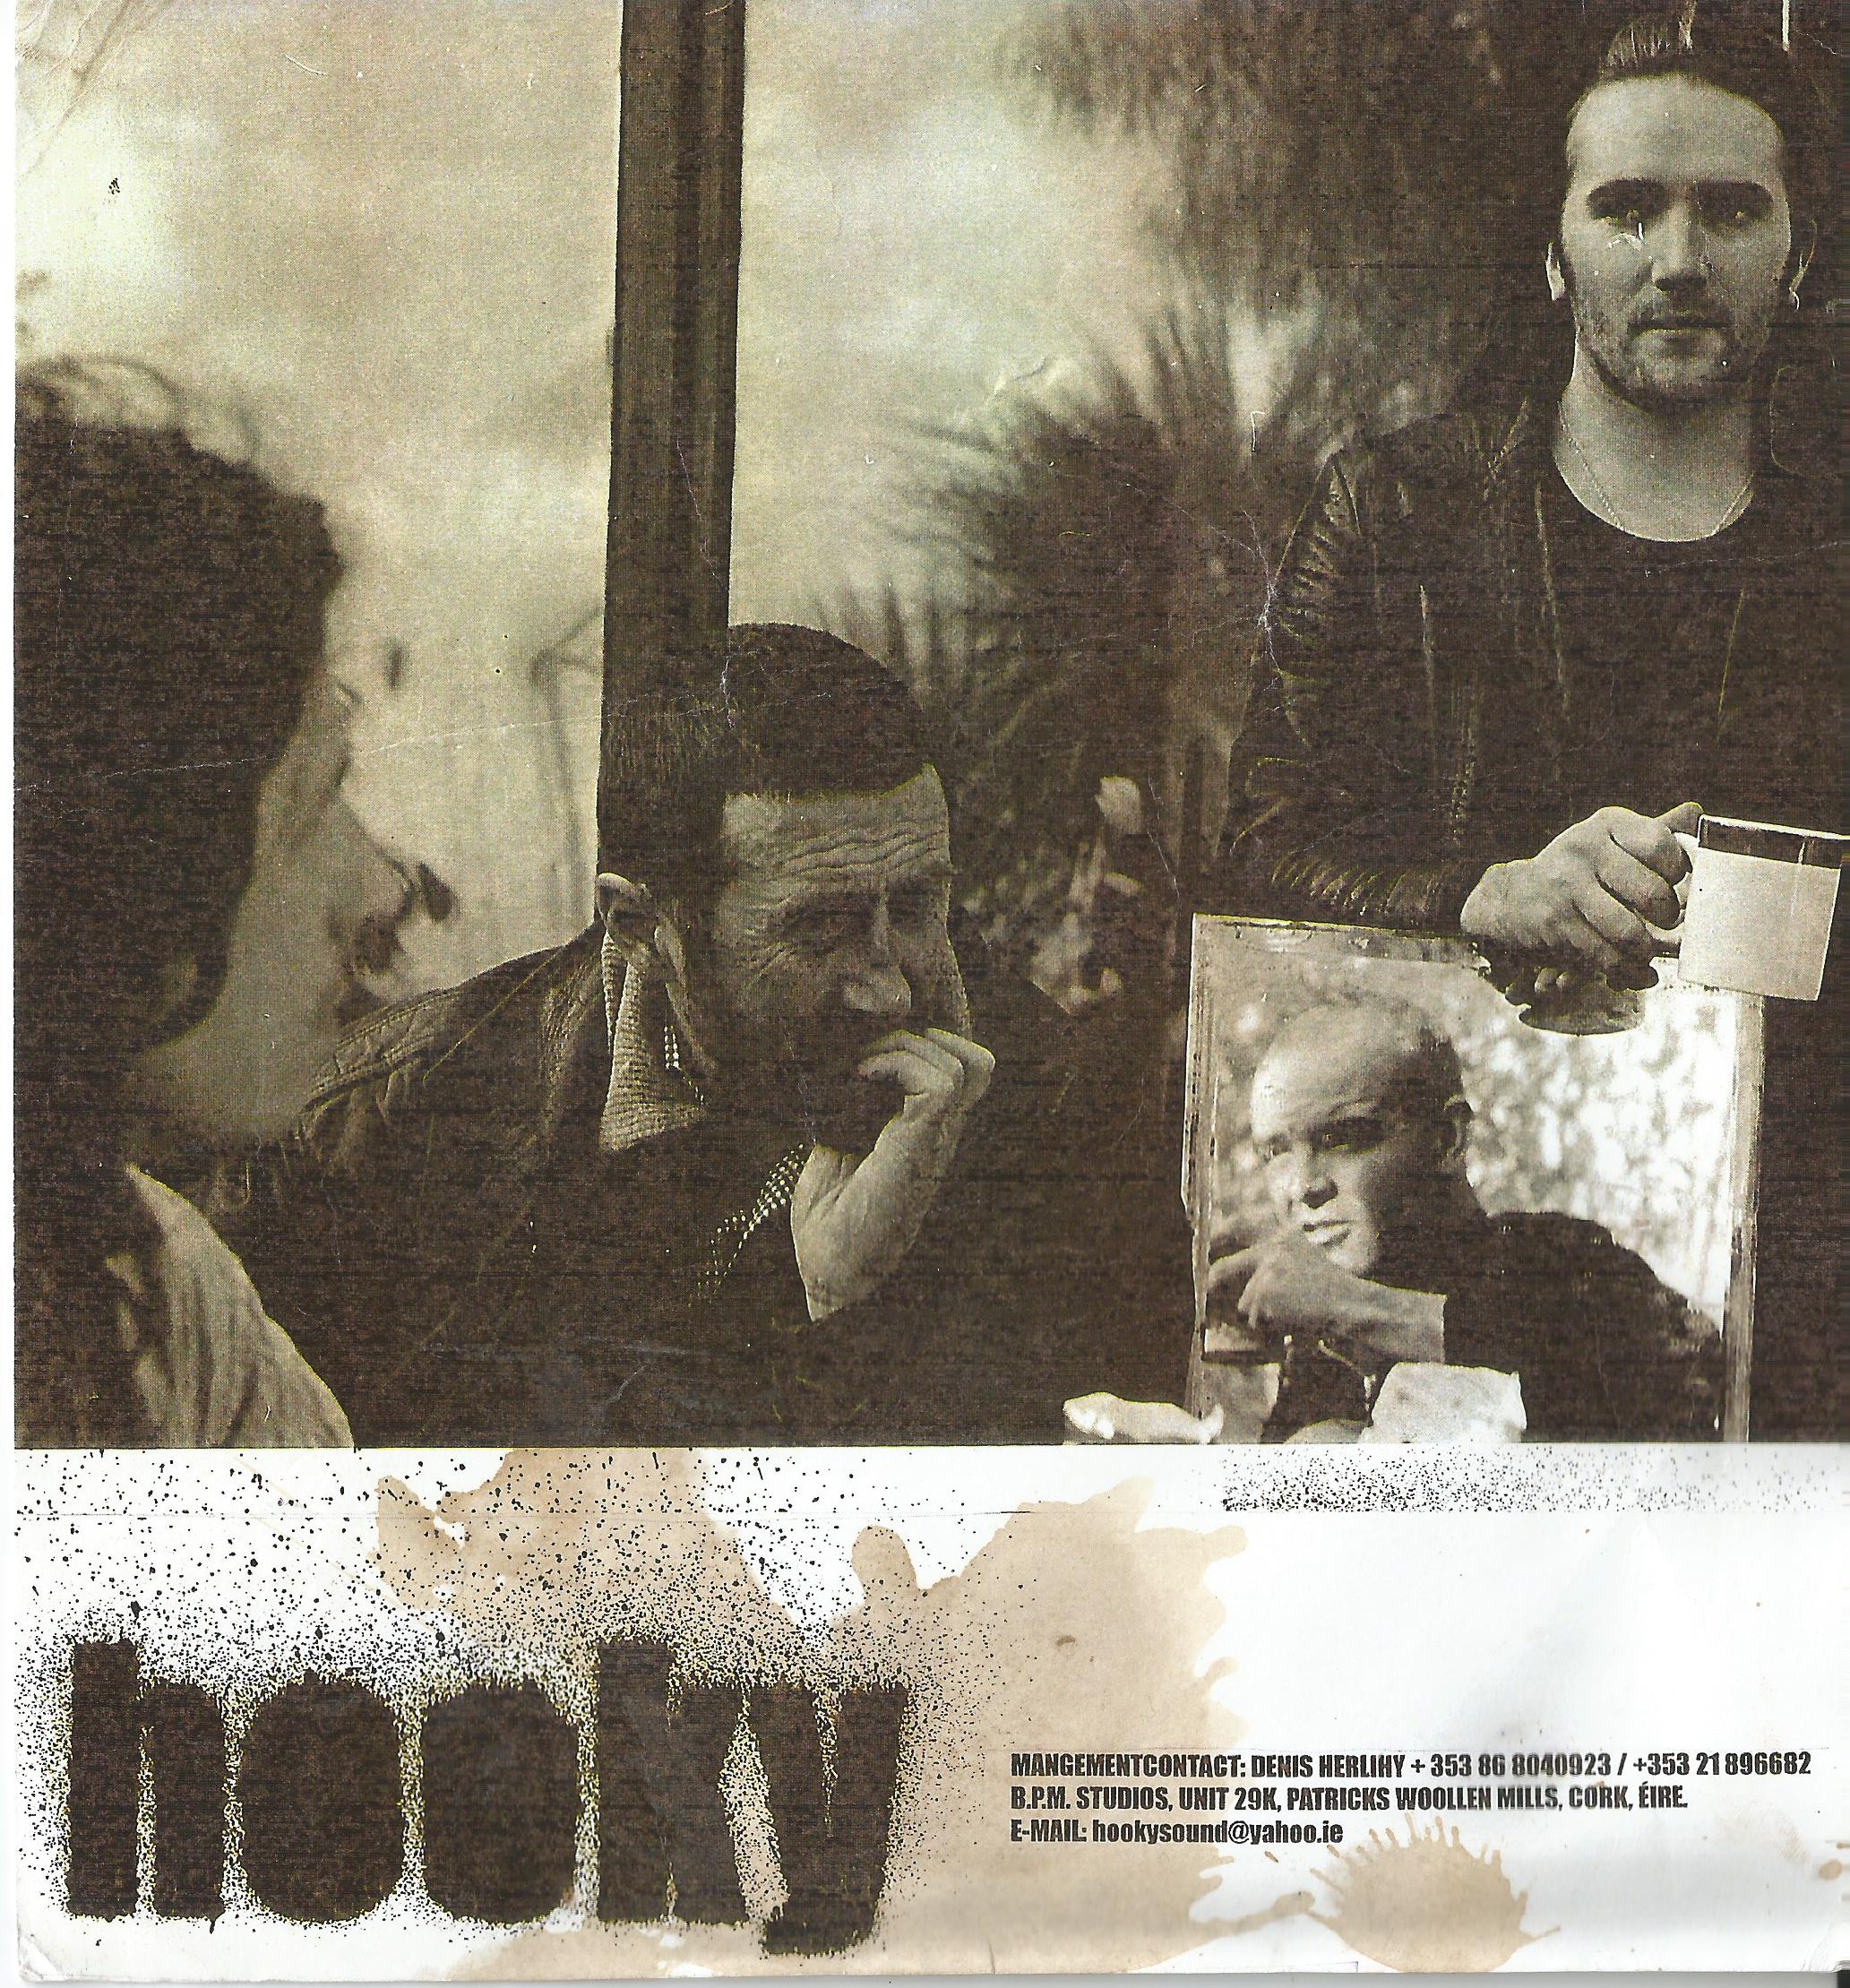 Hooky Press Photo